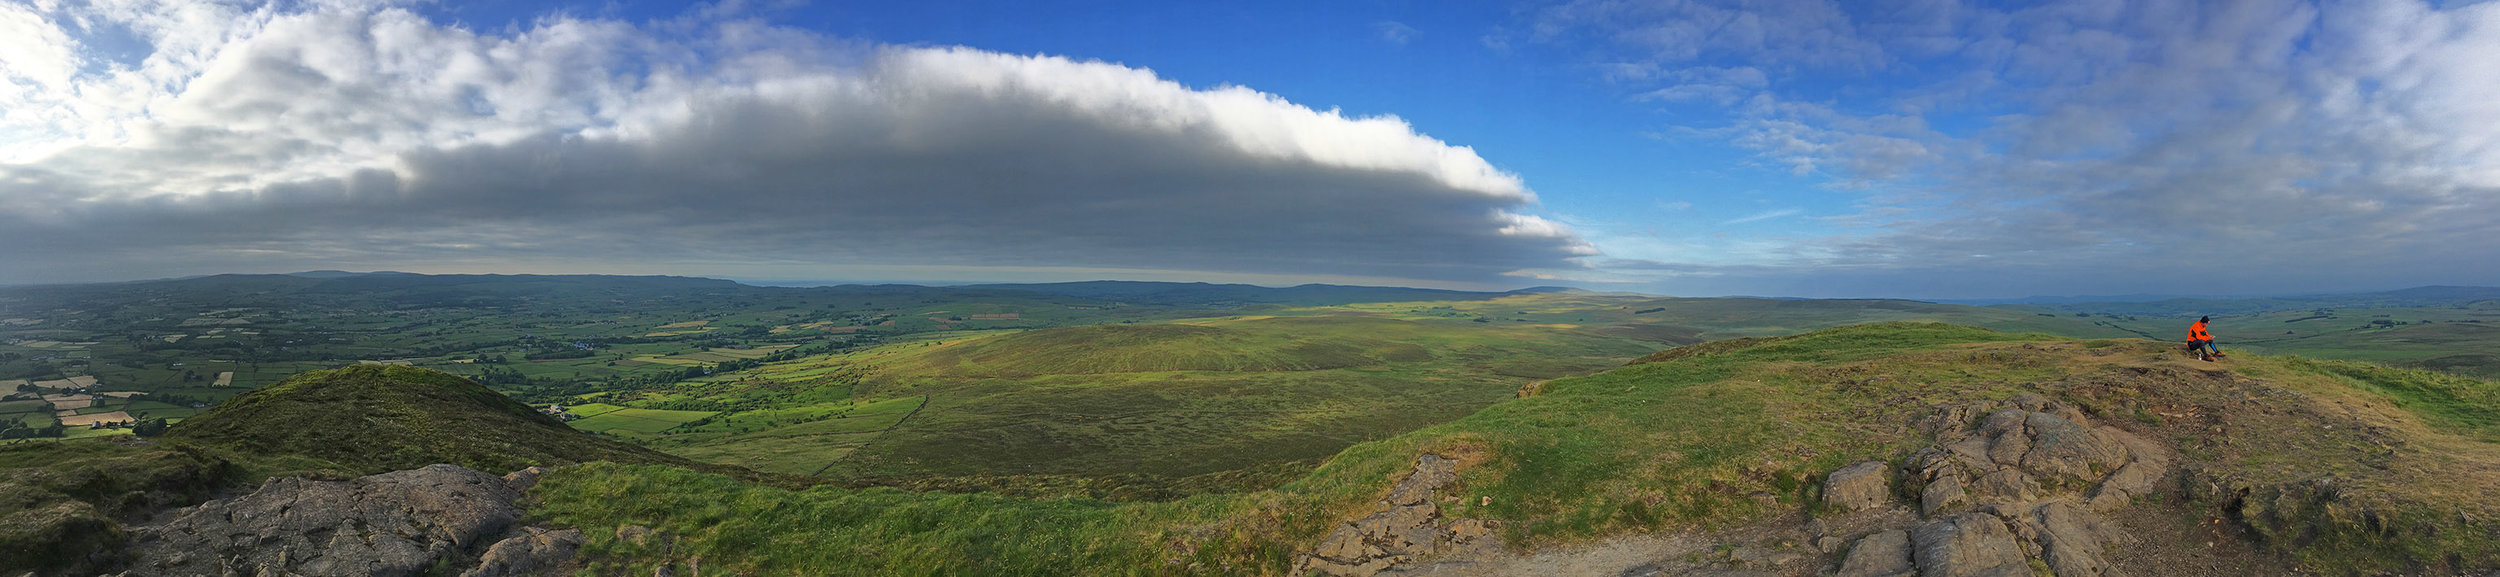 Panoramic view from the top of Slemish